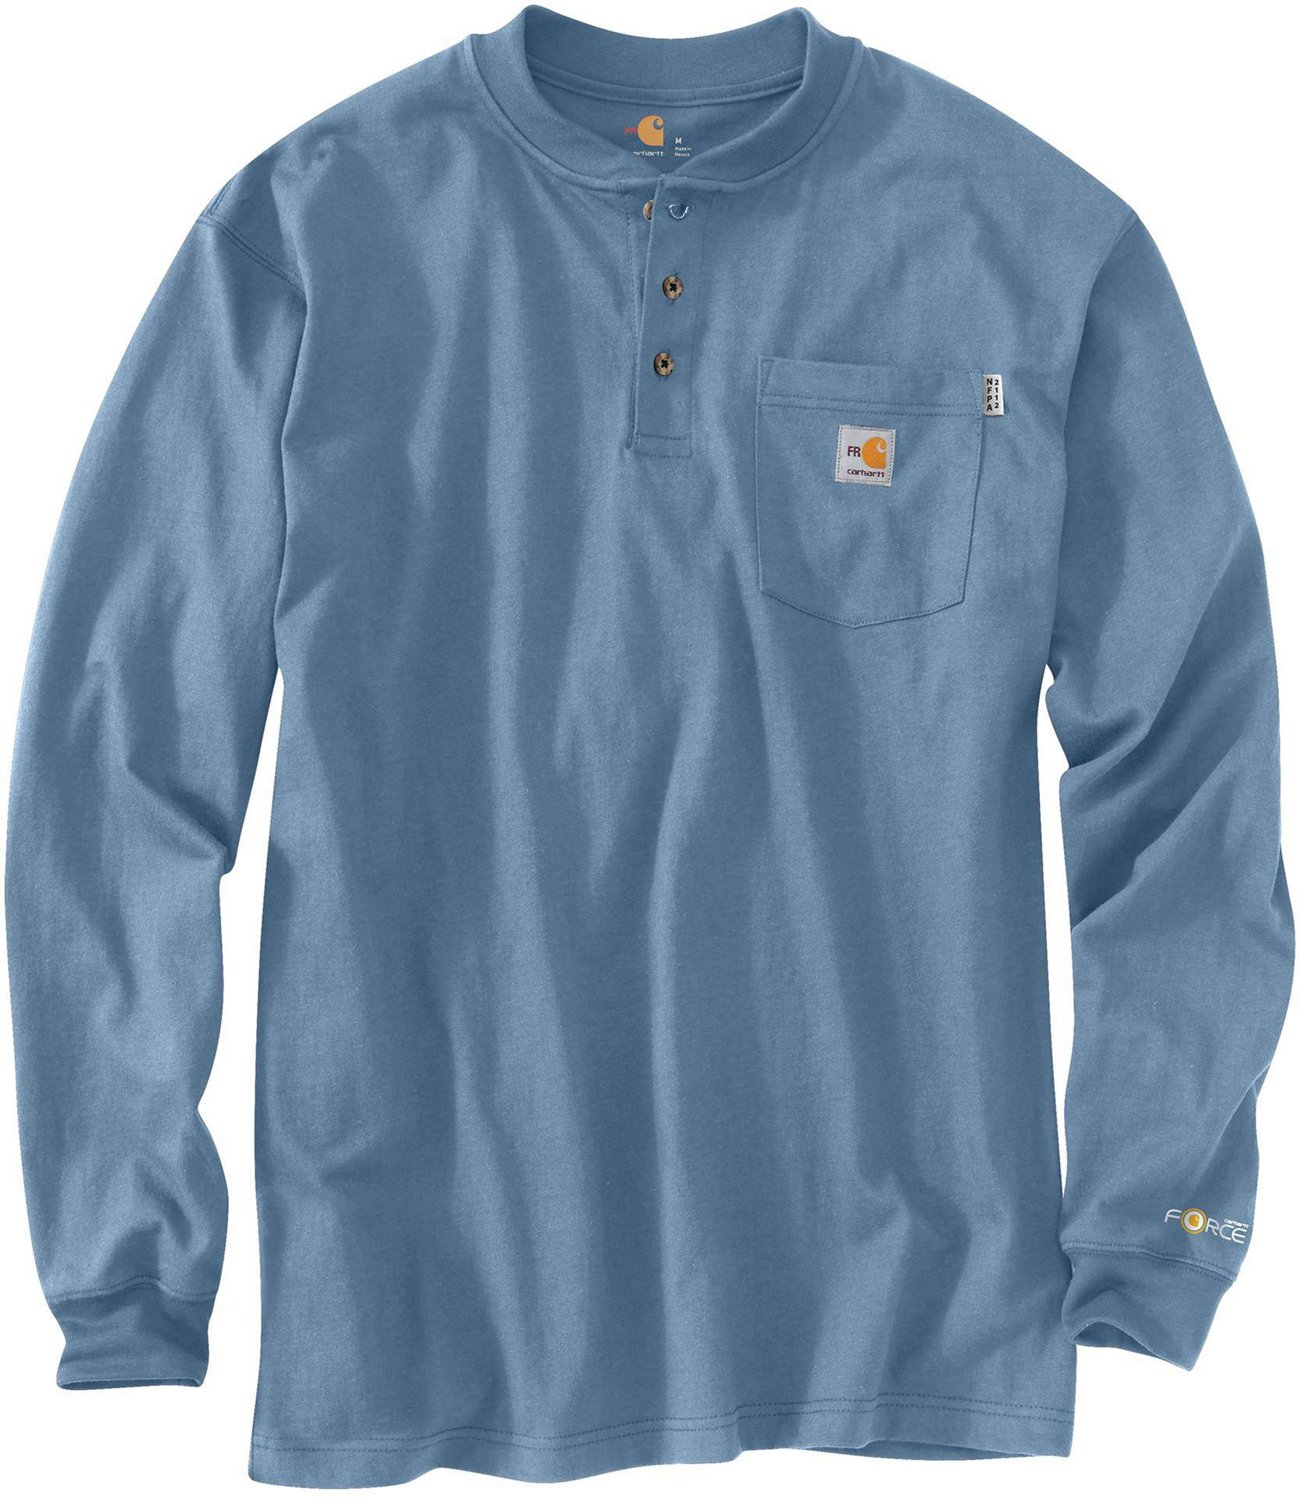 f2727c294 Display product reviews for Carhartt Men's Flame-Resistant Force Cotton Long  Sleeve Henley